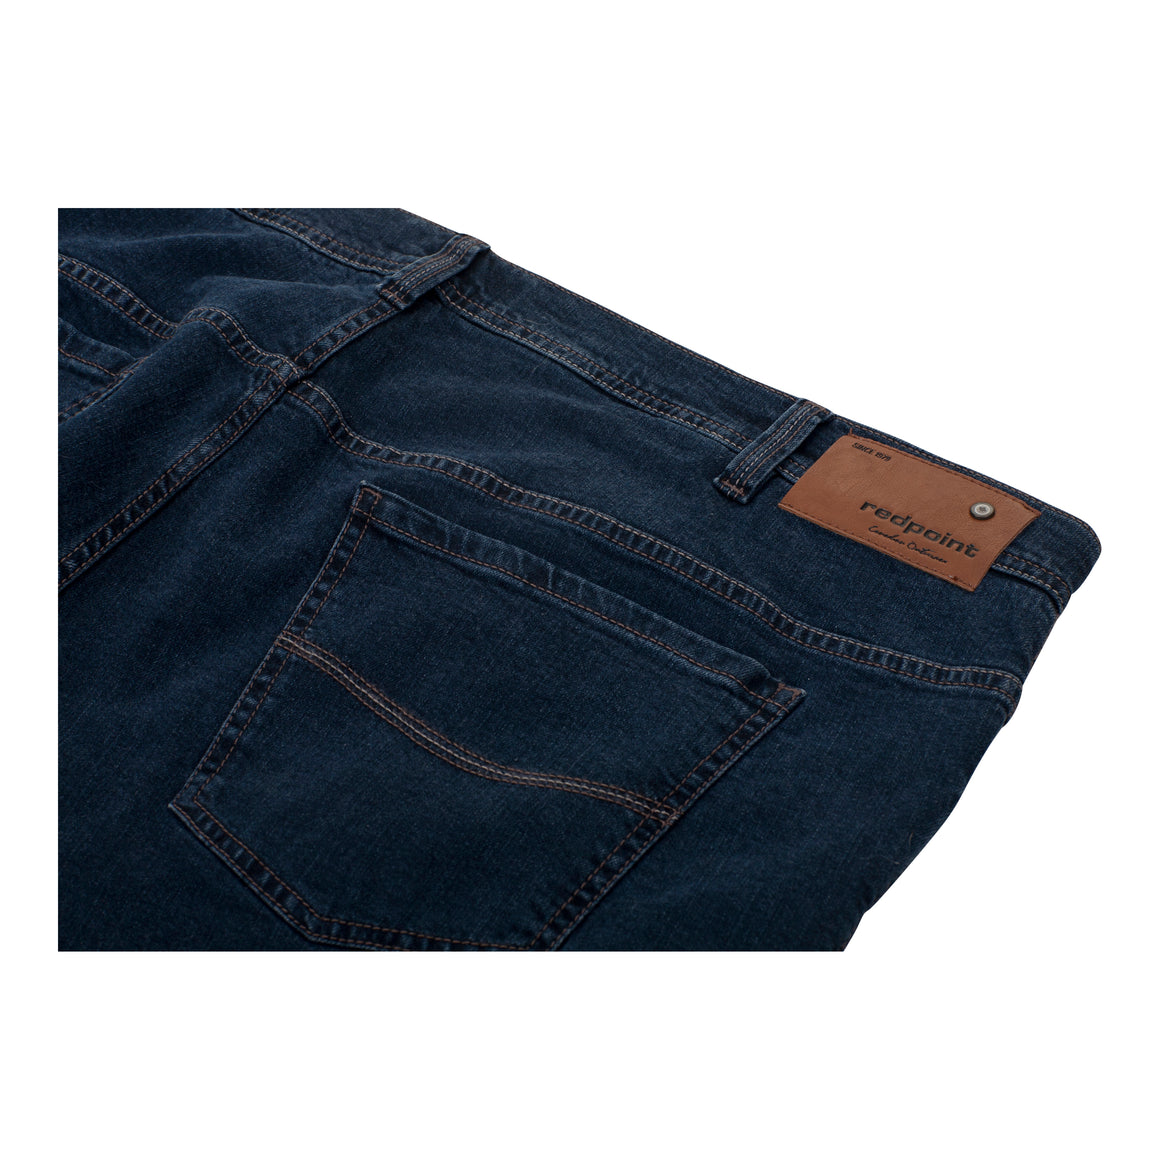 Langley Jeans for Men in Navy